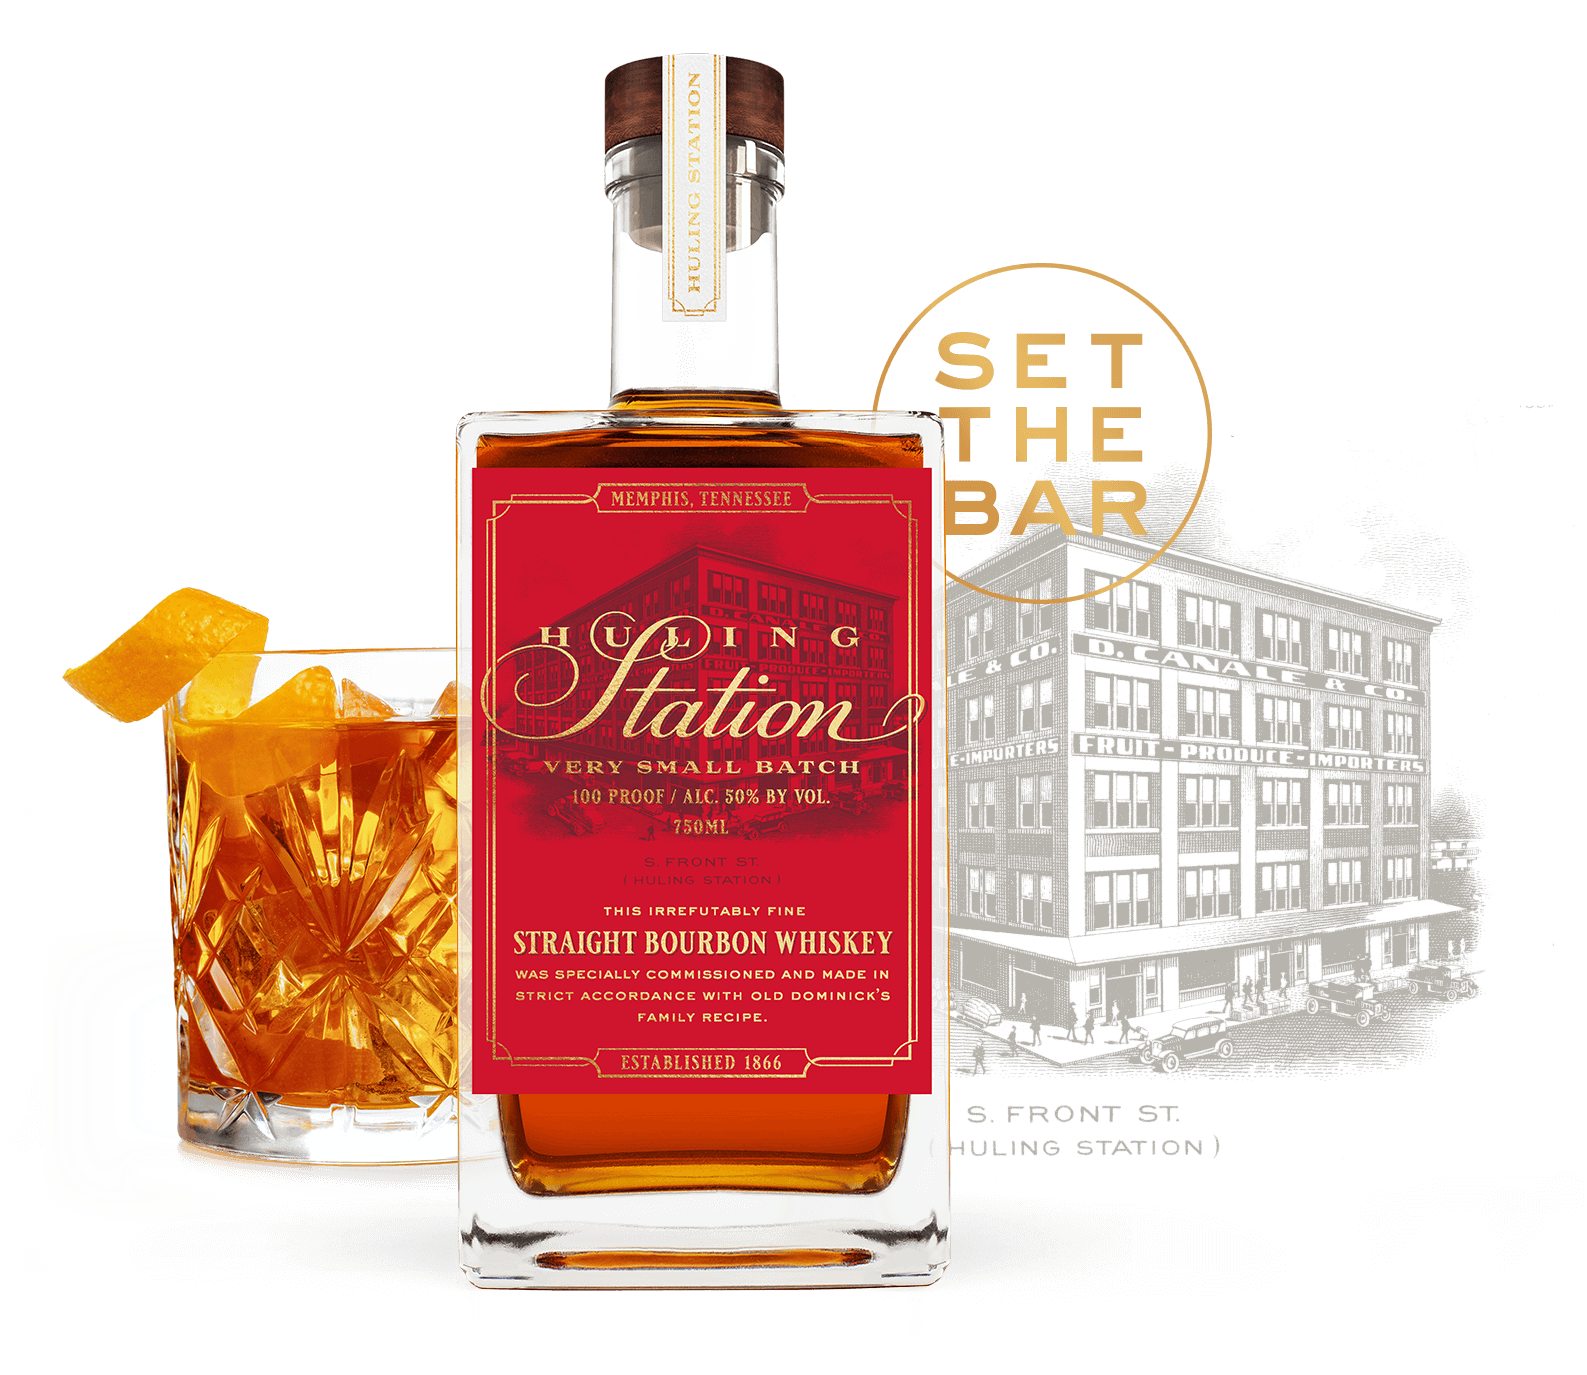 Huling Station Straight Bourbon